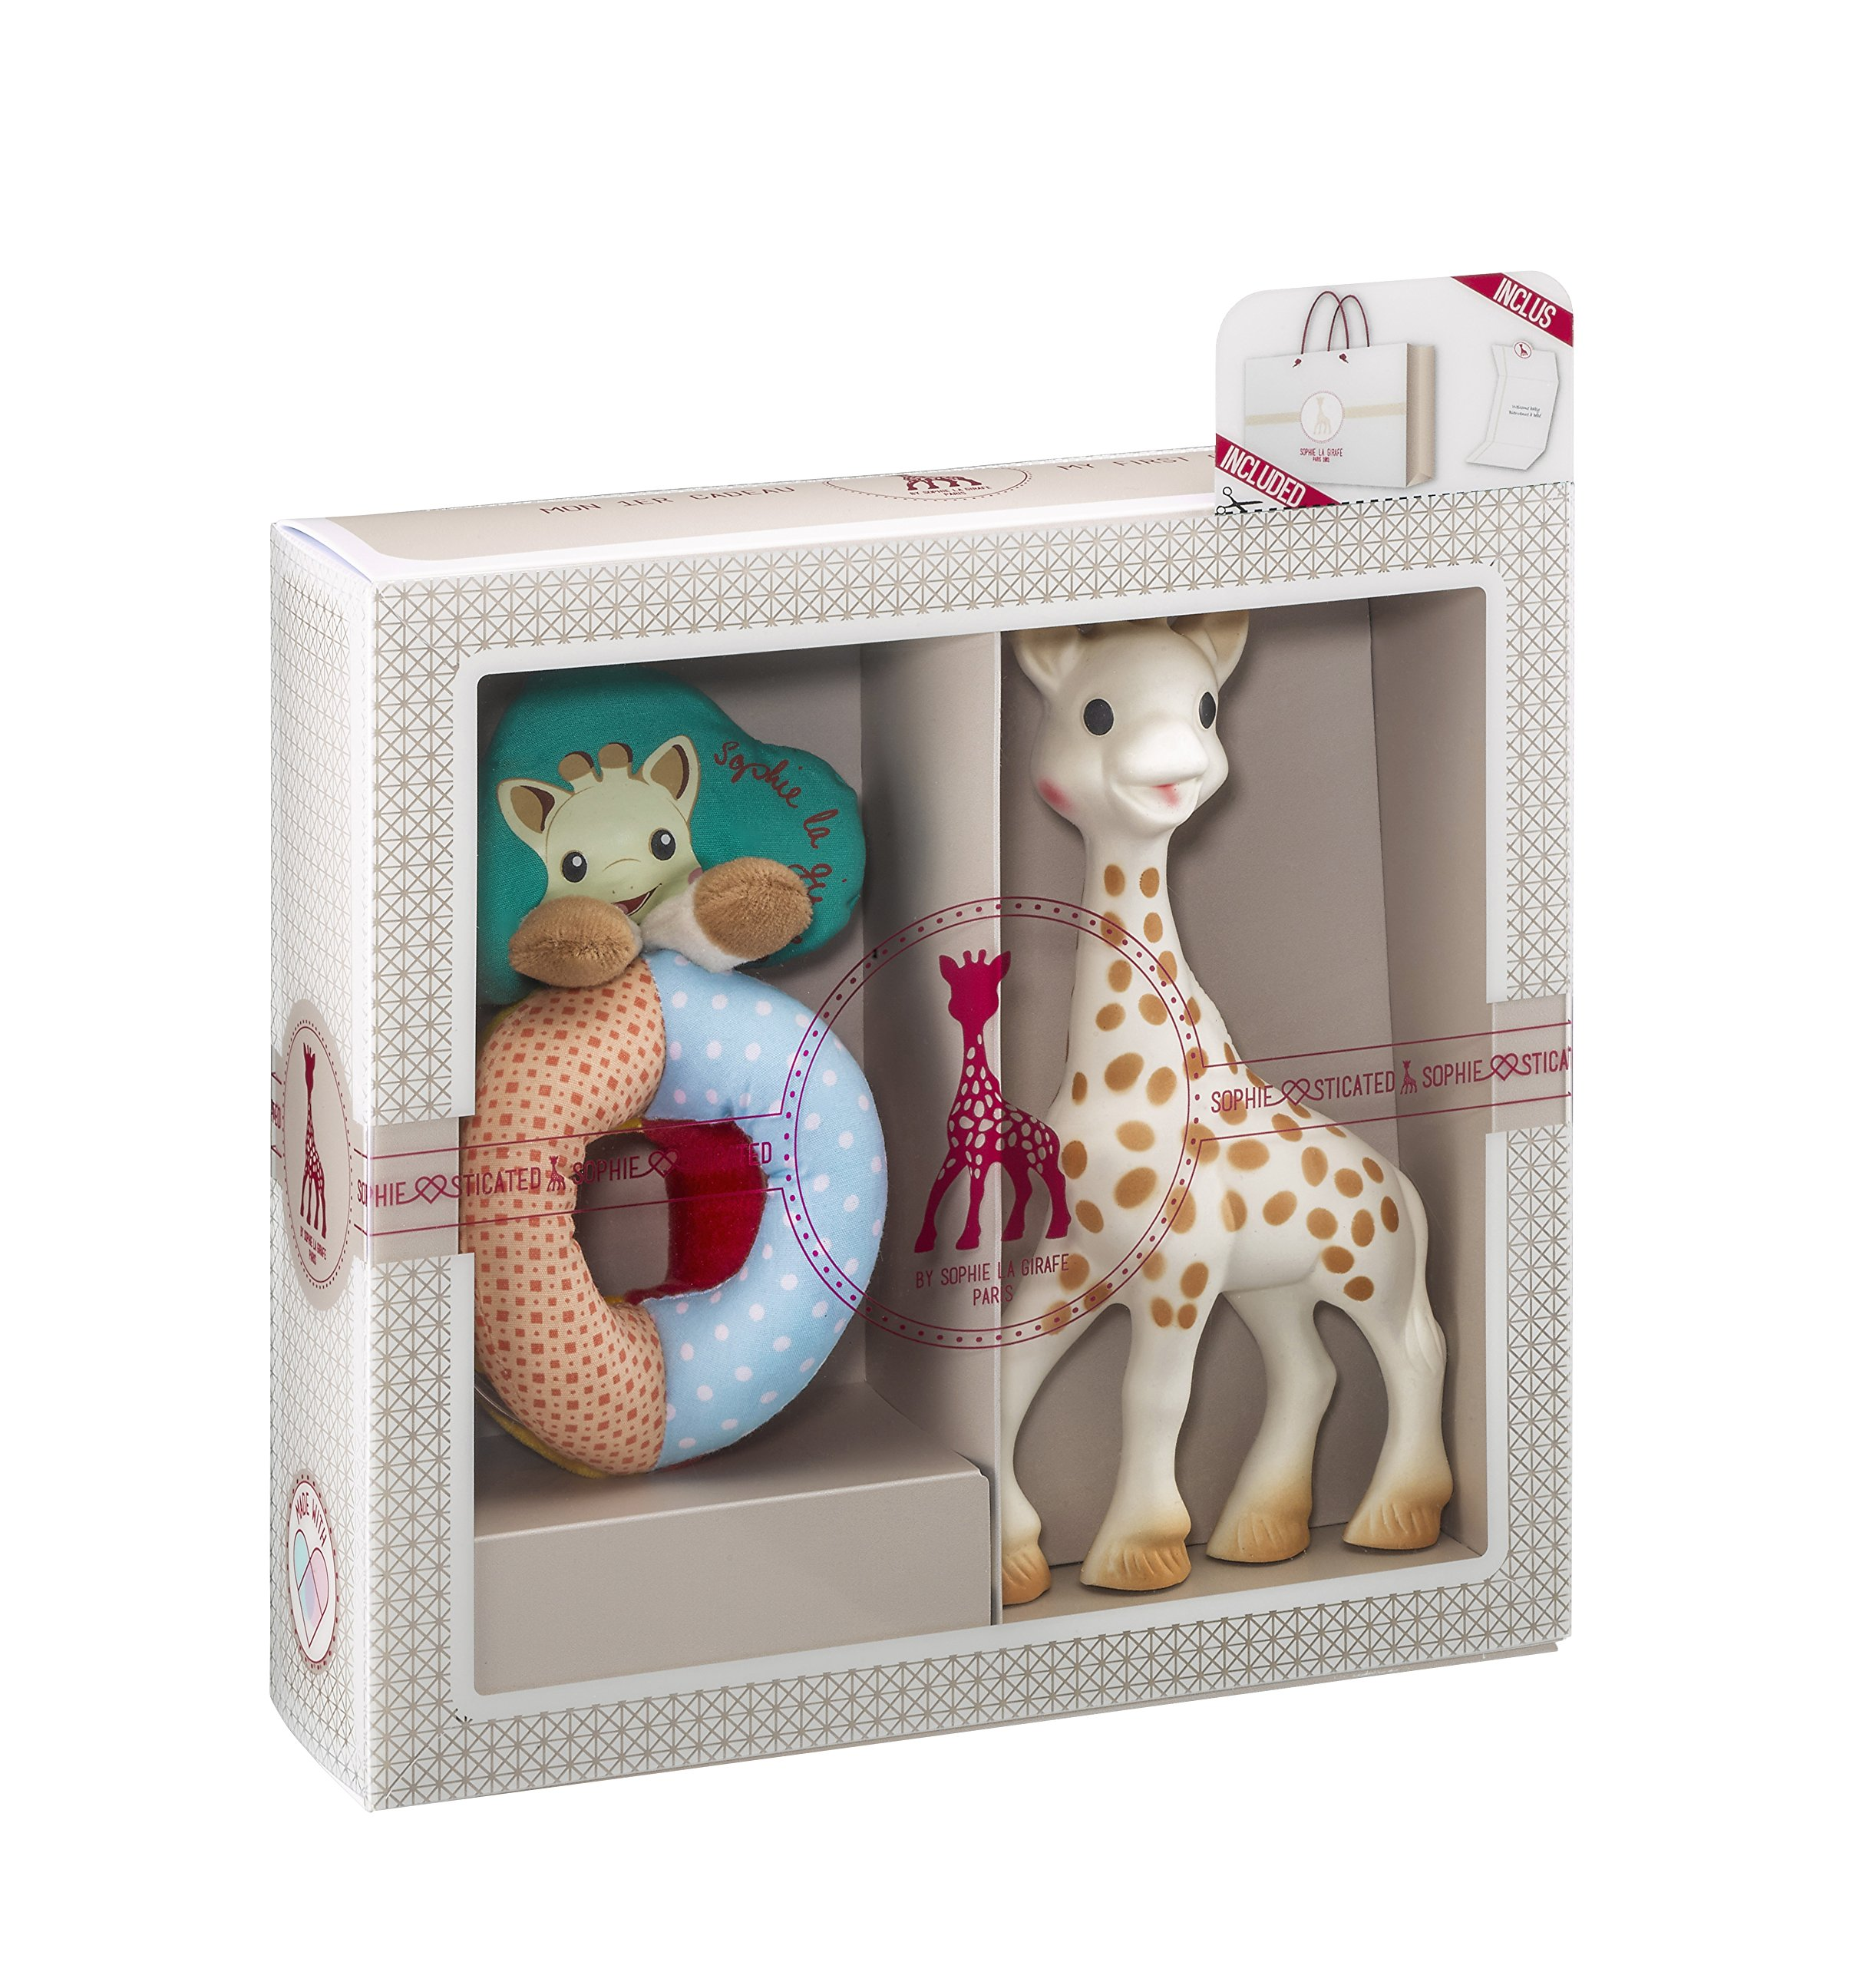 Vulli Sophie la Giraffe Sophiesticated Tenderness Creation Birth Set Small #2 - Rattle and Teether